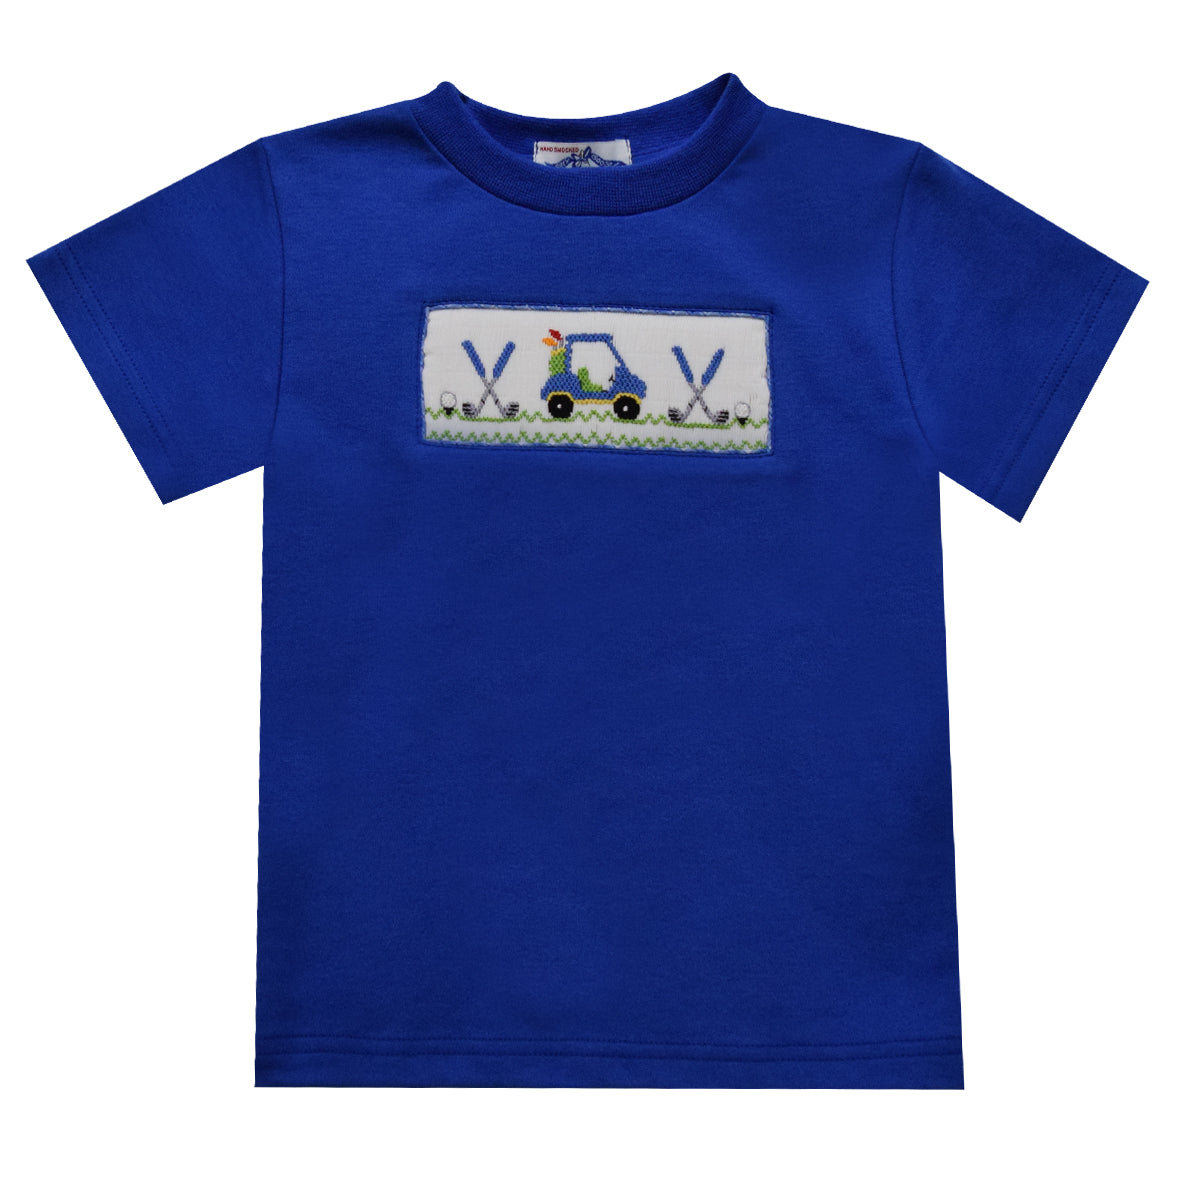 Golf Car Smocked Royal Knit Short Sleeve Boys Tee Shirt